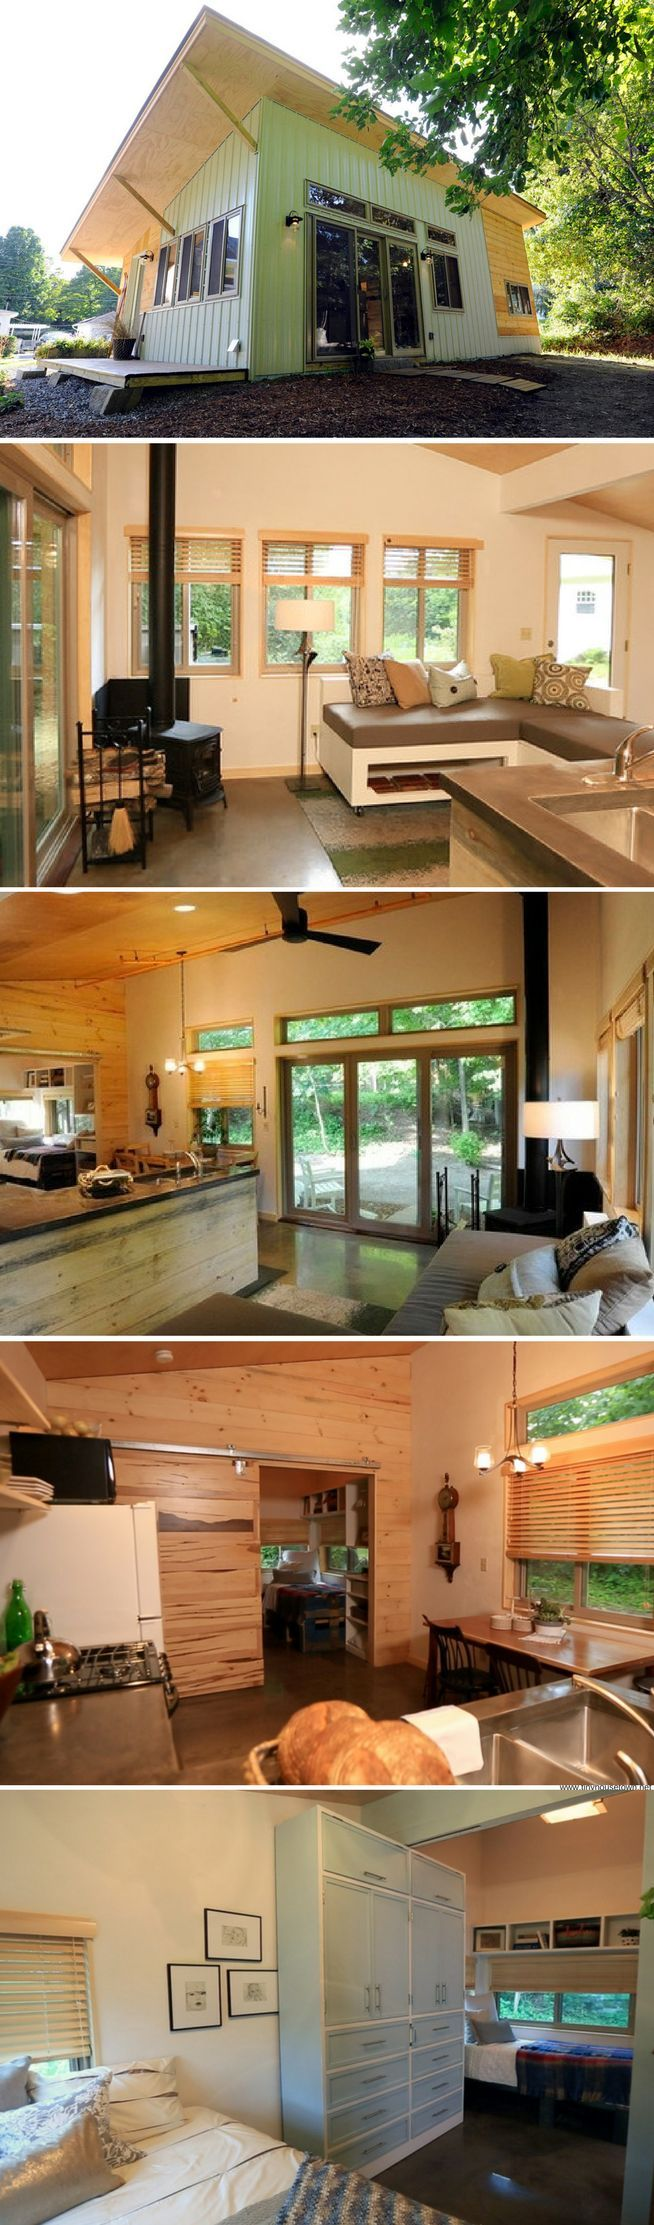 Vermont Chalet: a 493 sq ft family home in Montpelier